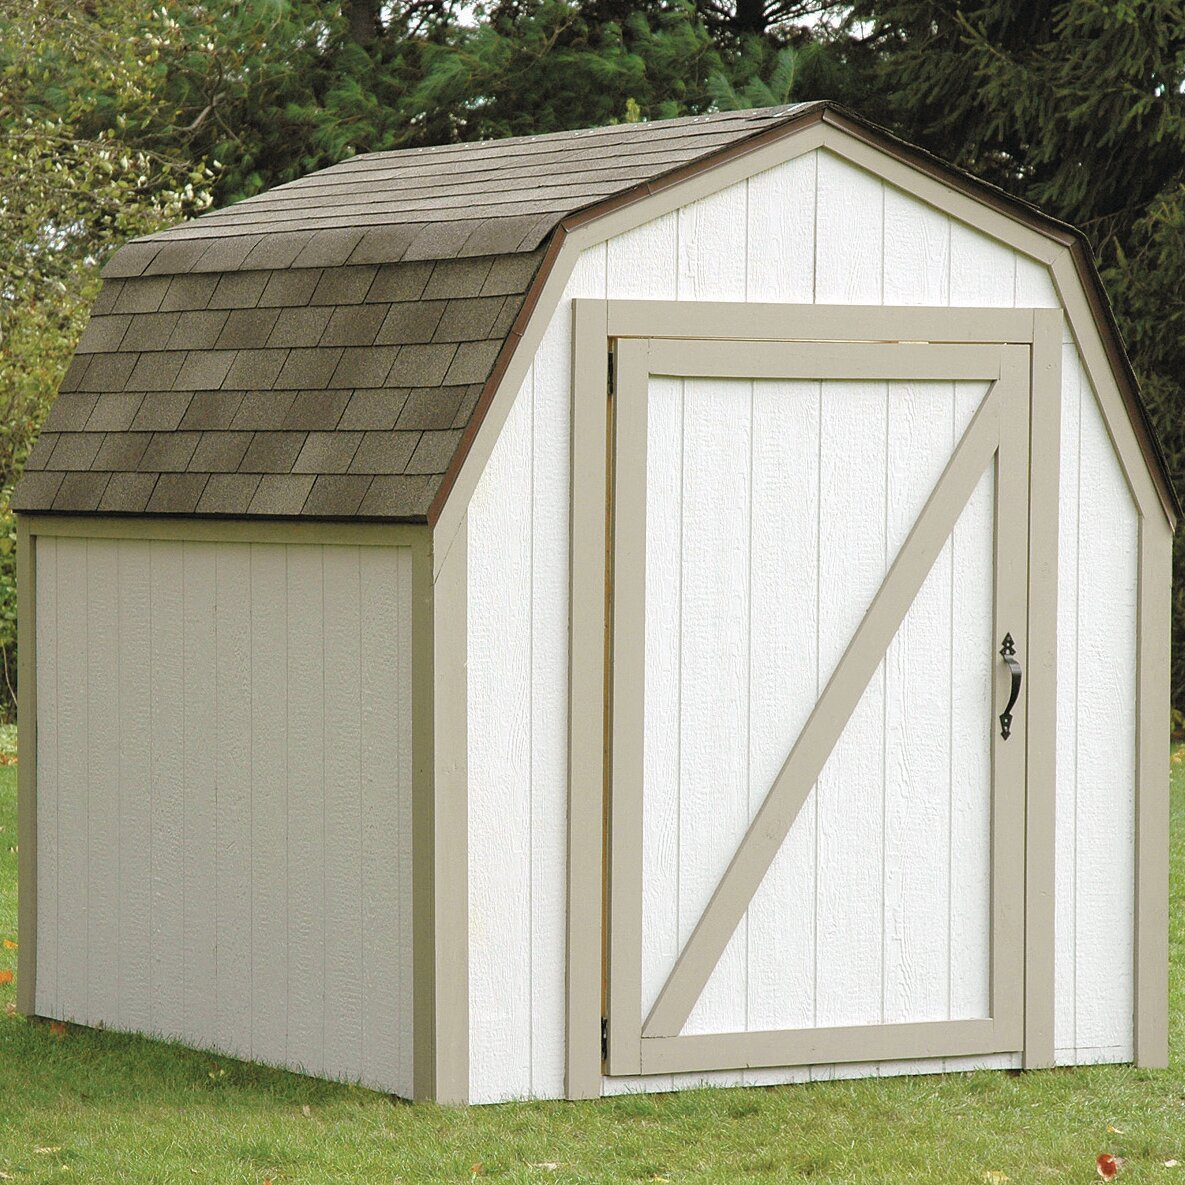 2x4 basics barn roof shed kit reviews wayfair supply - Garden sheds michigan ...